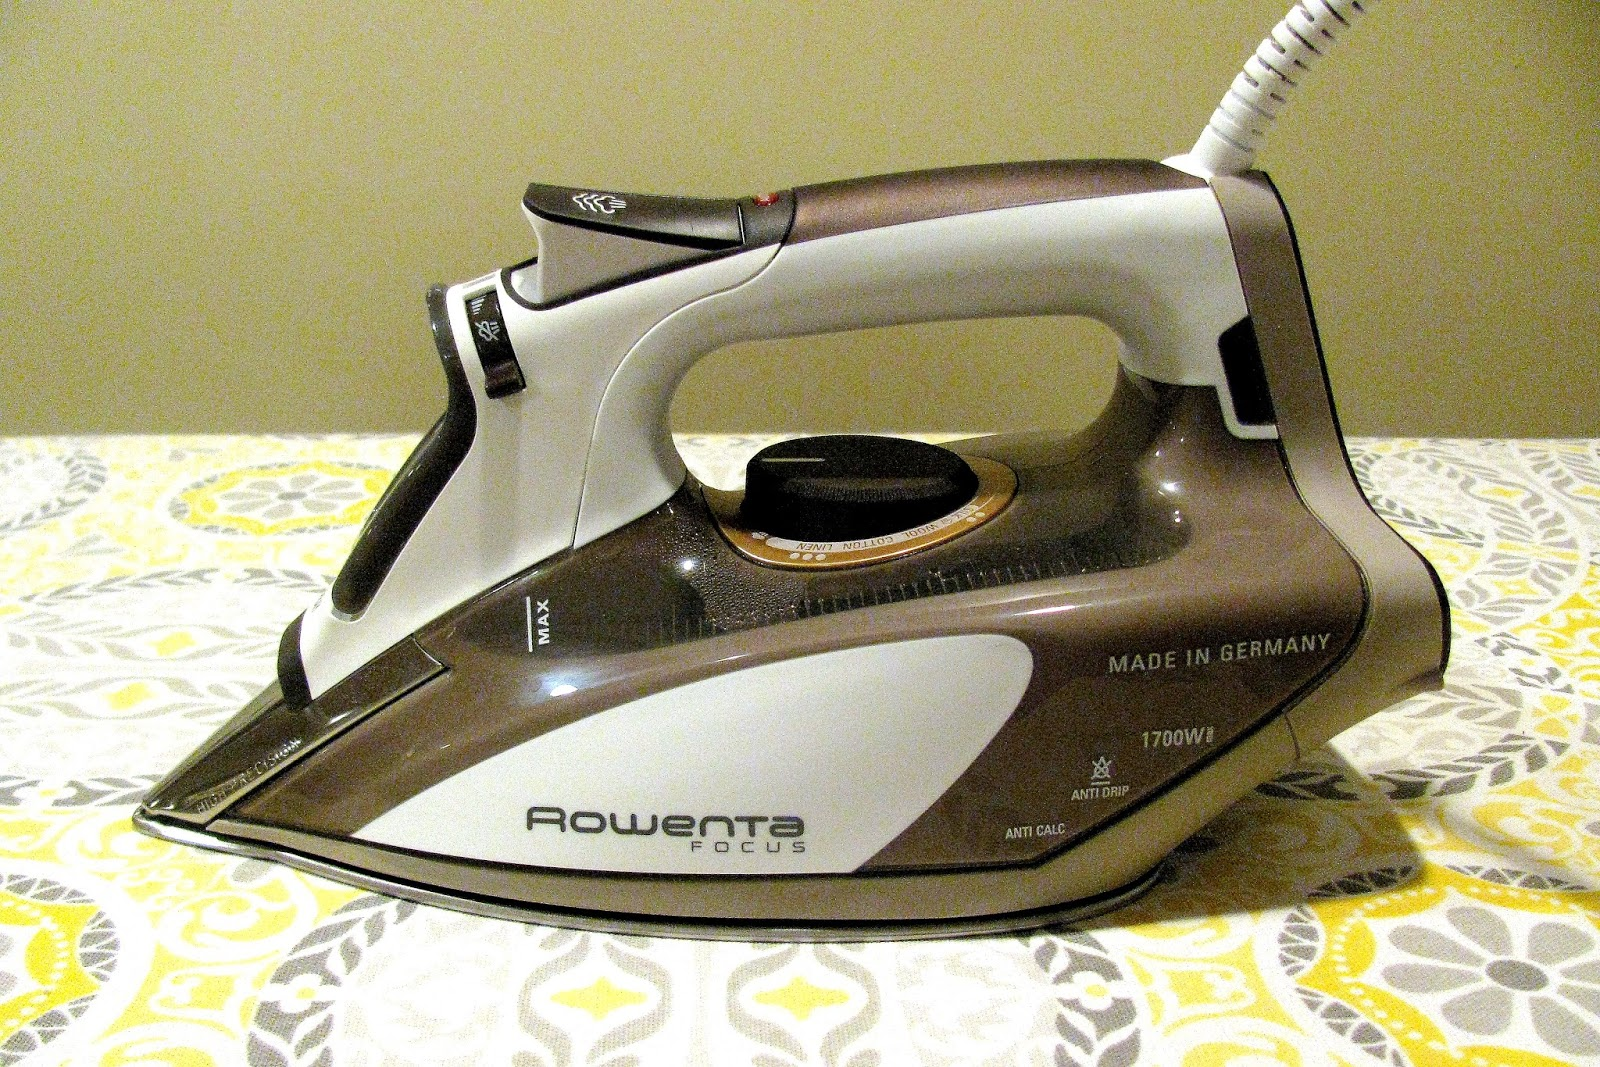 Monica curry quilt designs: 4 must have irons for quilting